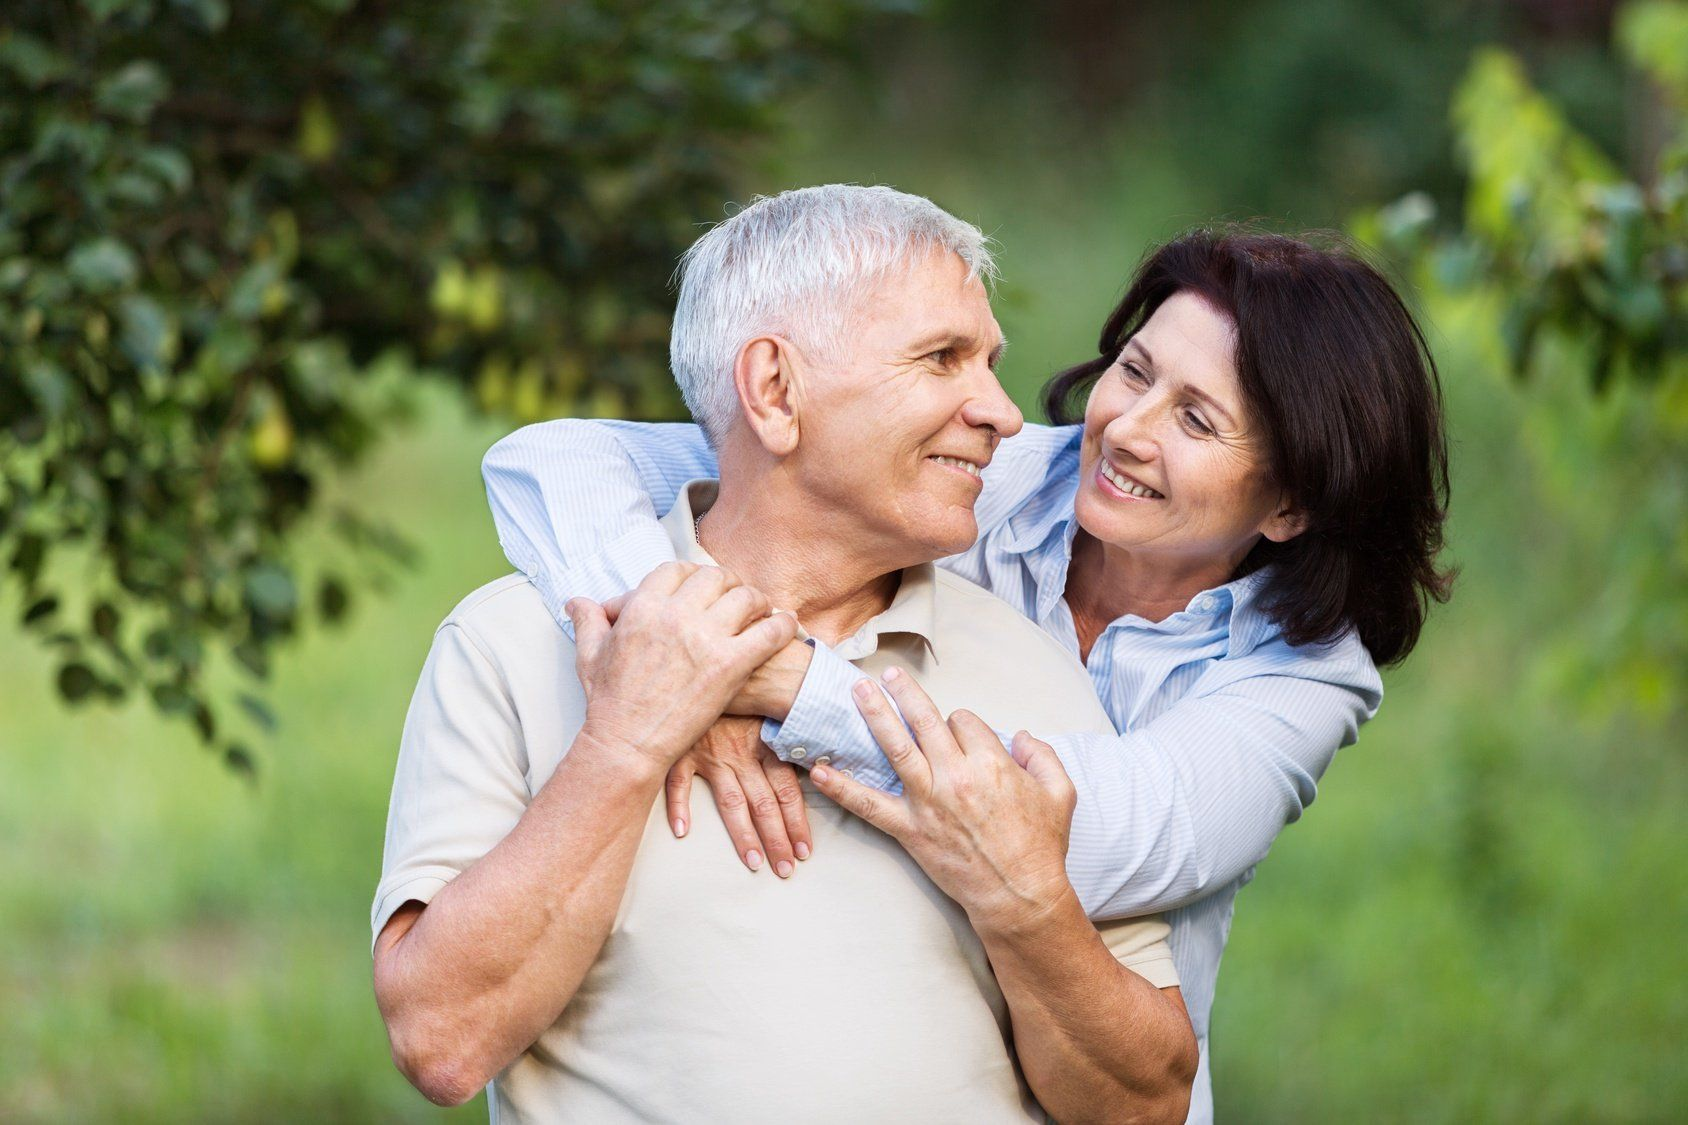 Kissing Poses Challenges with Dentures